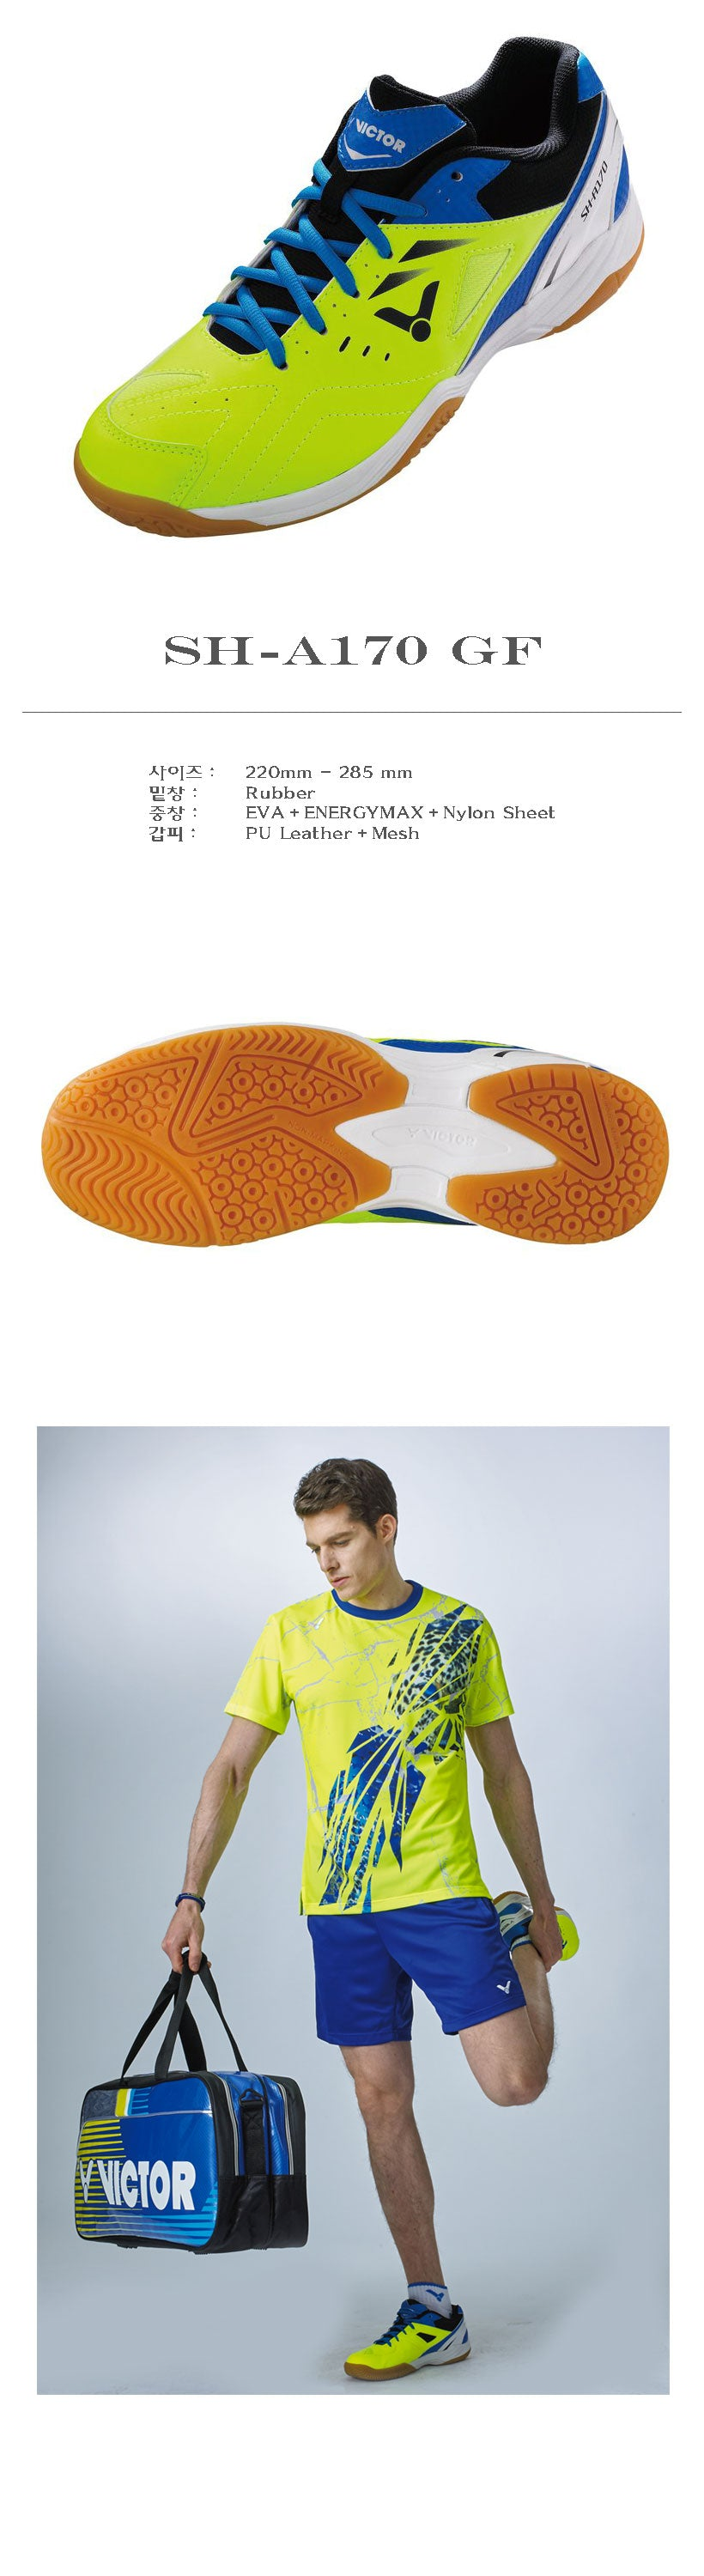 Victor [A170 GF Yellow] Badminton Shoes